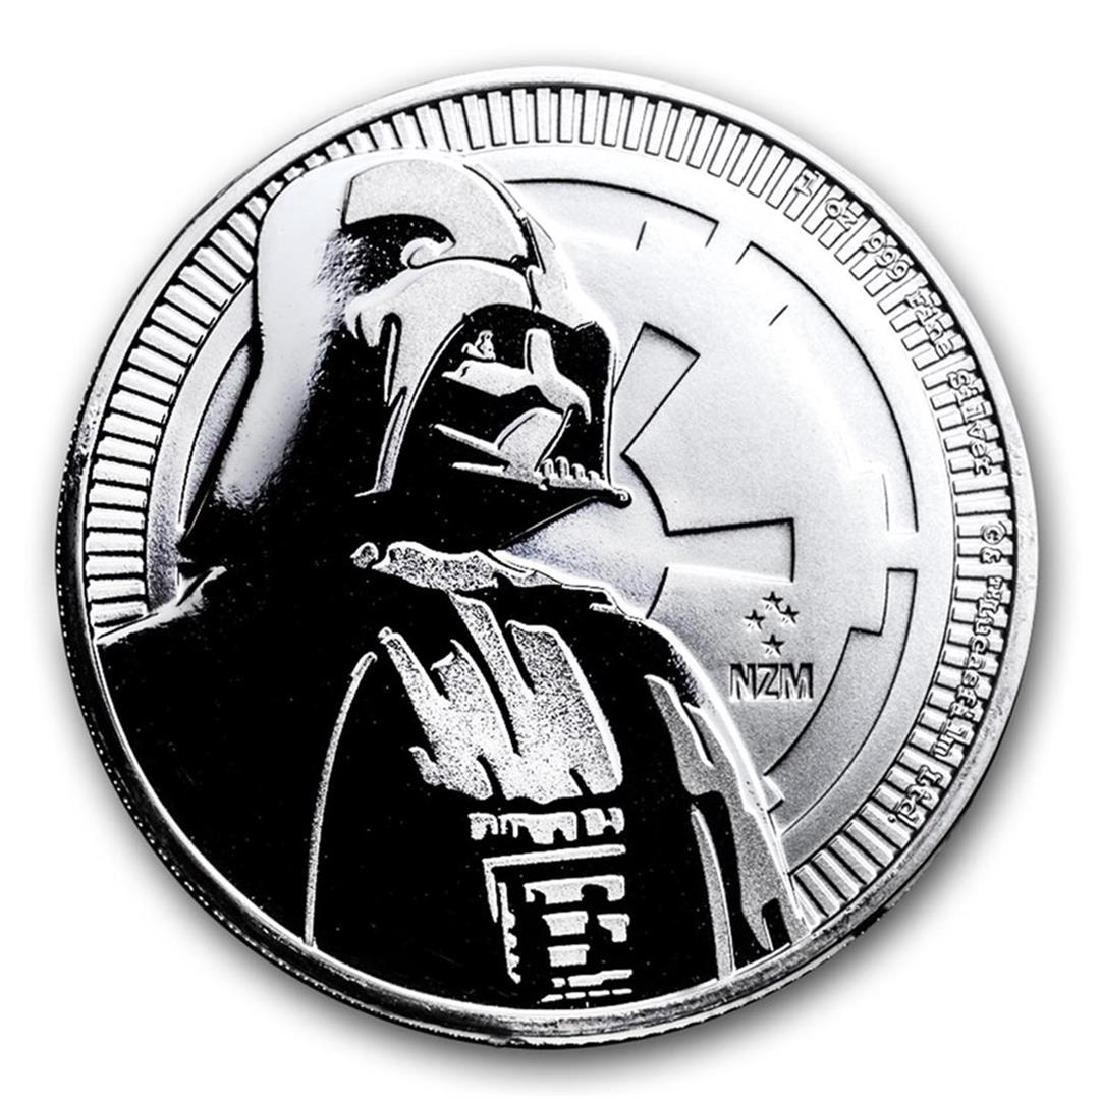 2017 Niue $2 Star Wars Darth Vader Silver Coin